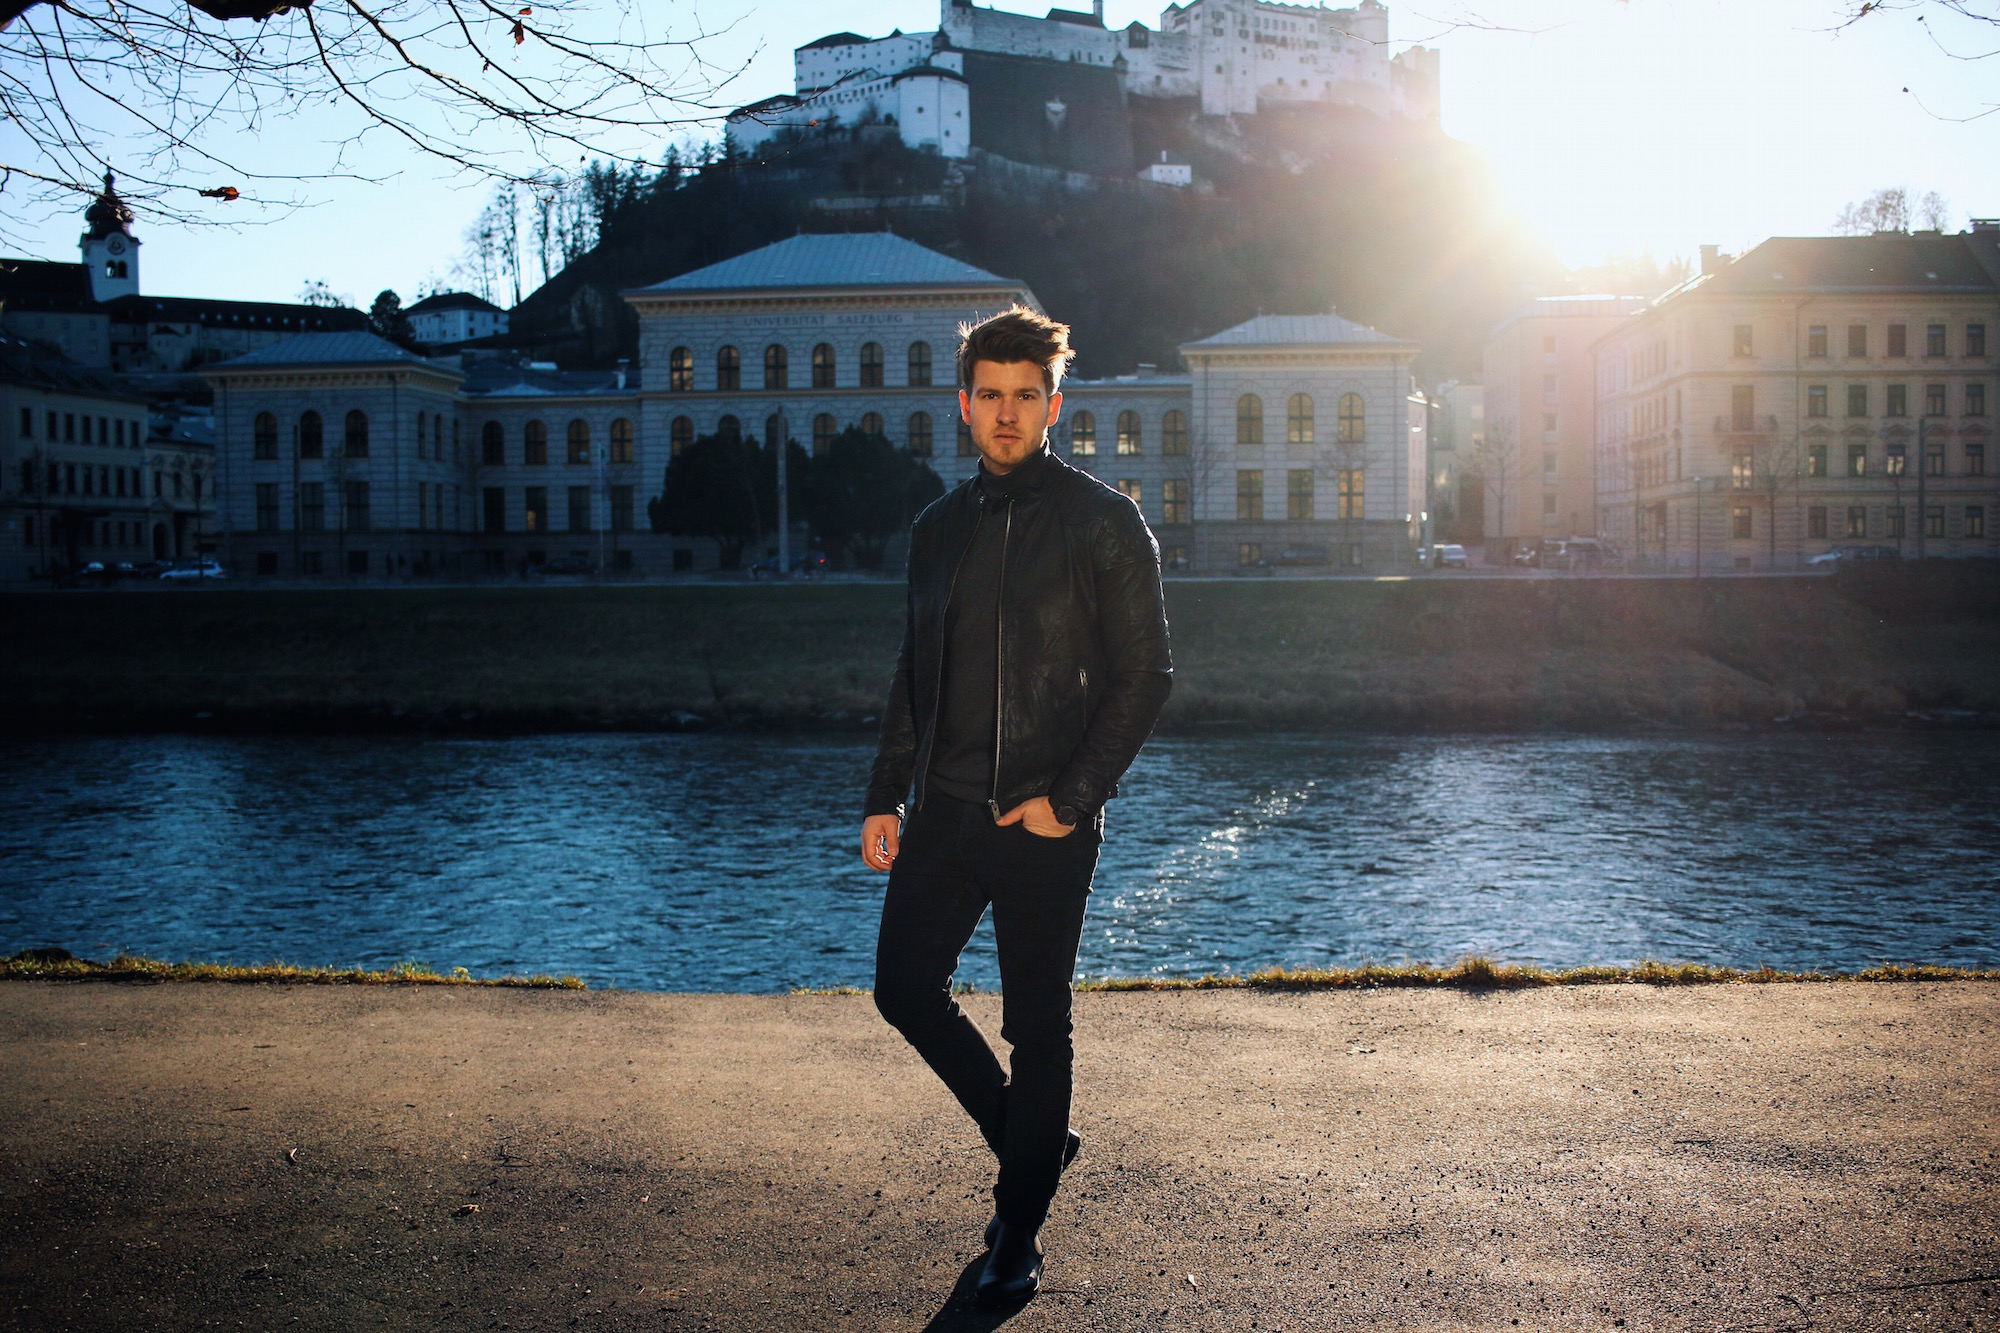 All Black Look by Selected Homme Lederjacke Rollkragenpullover und Chelsea Boots _ Meanwhile in Awesometown _ Wiener Blogger _ Maleblogger _ Mens Fashion Blogger5